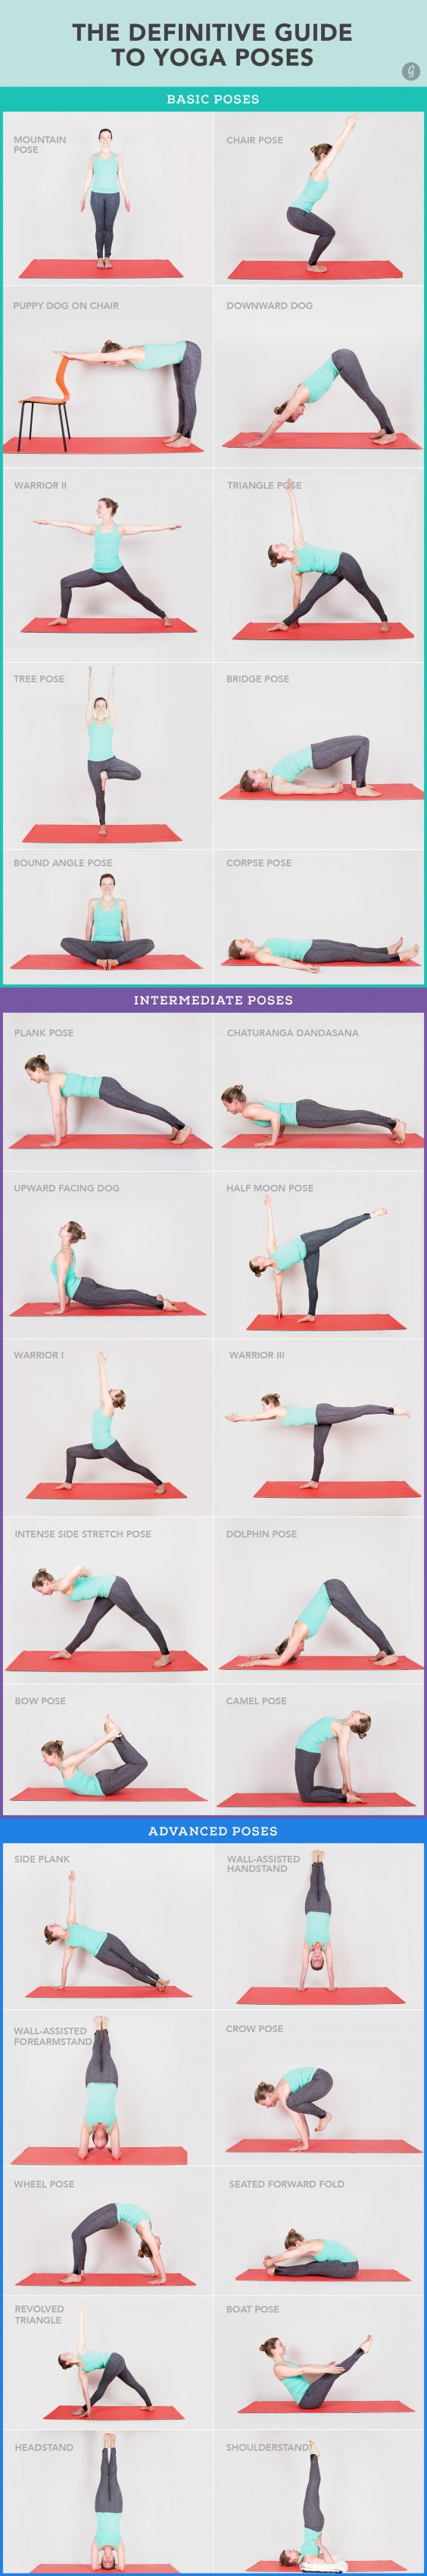 30 Yoga Poses You Really Need To Know